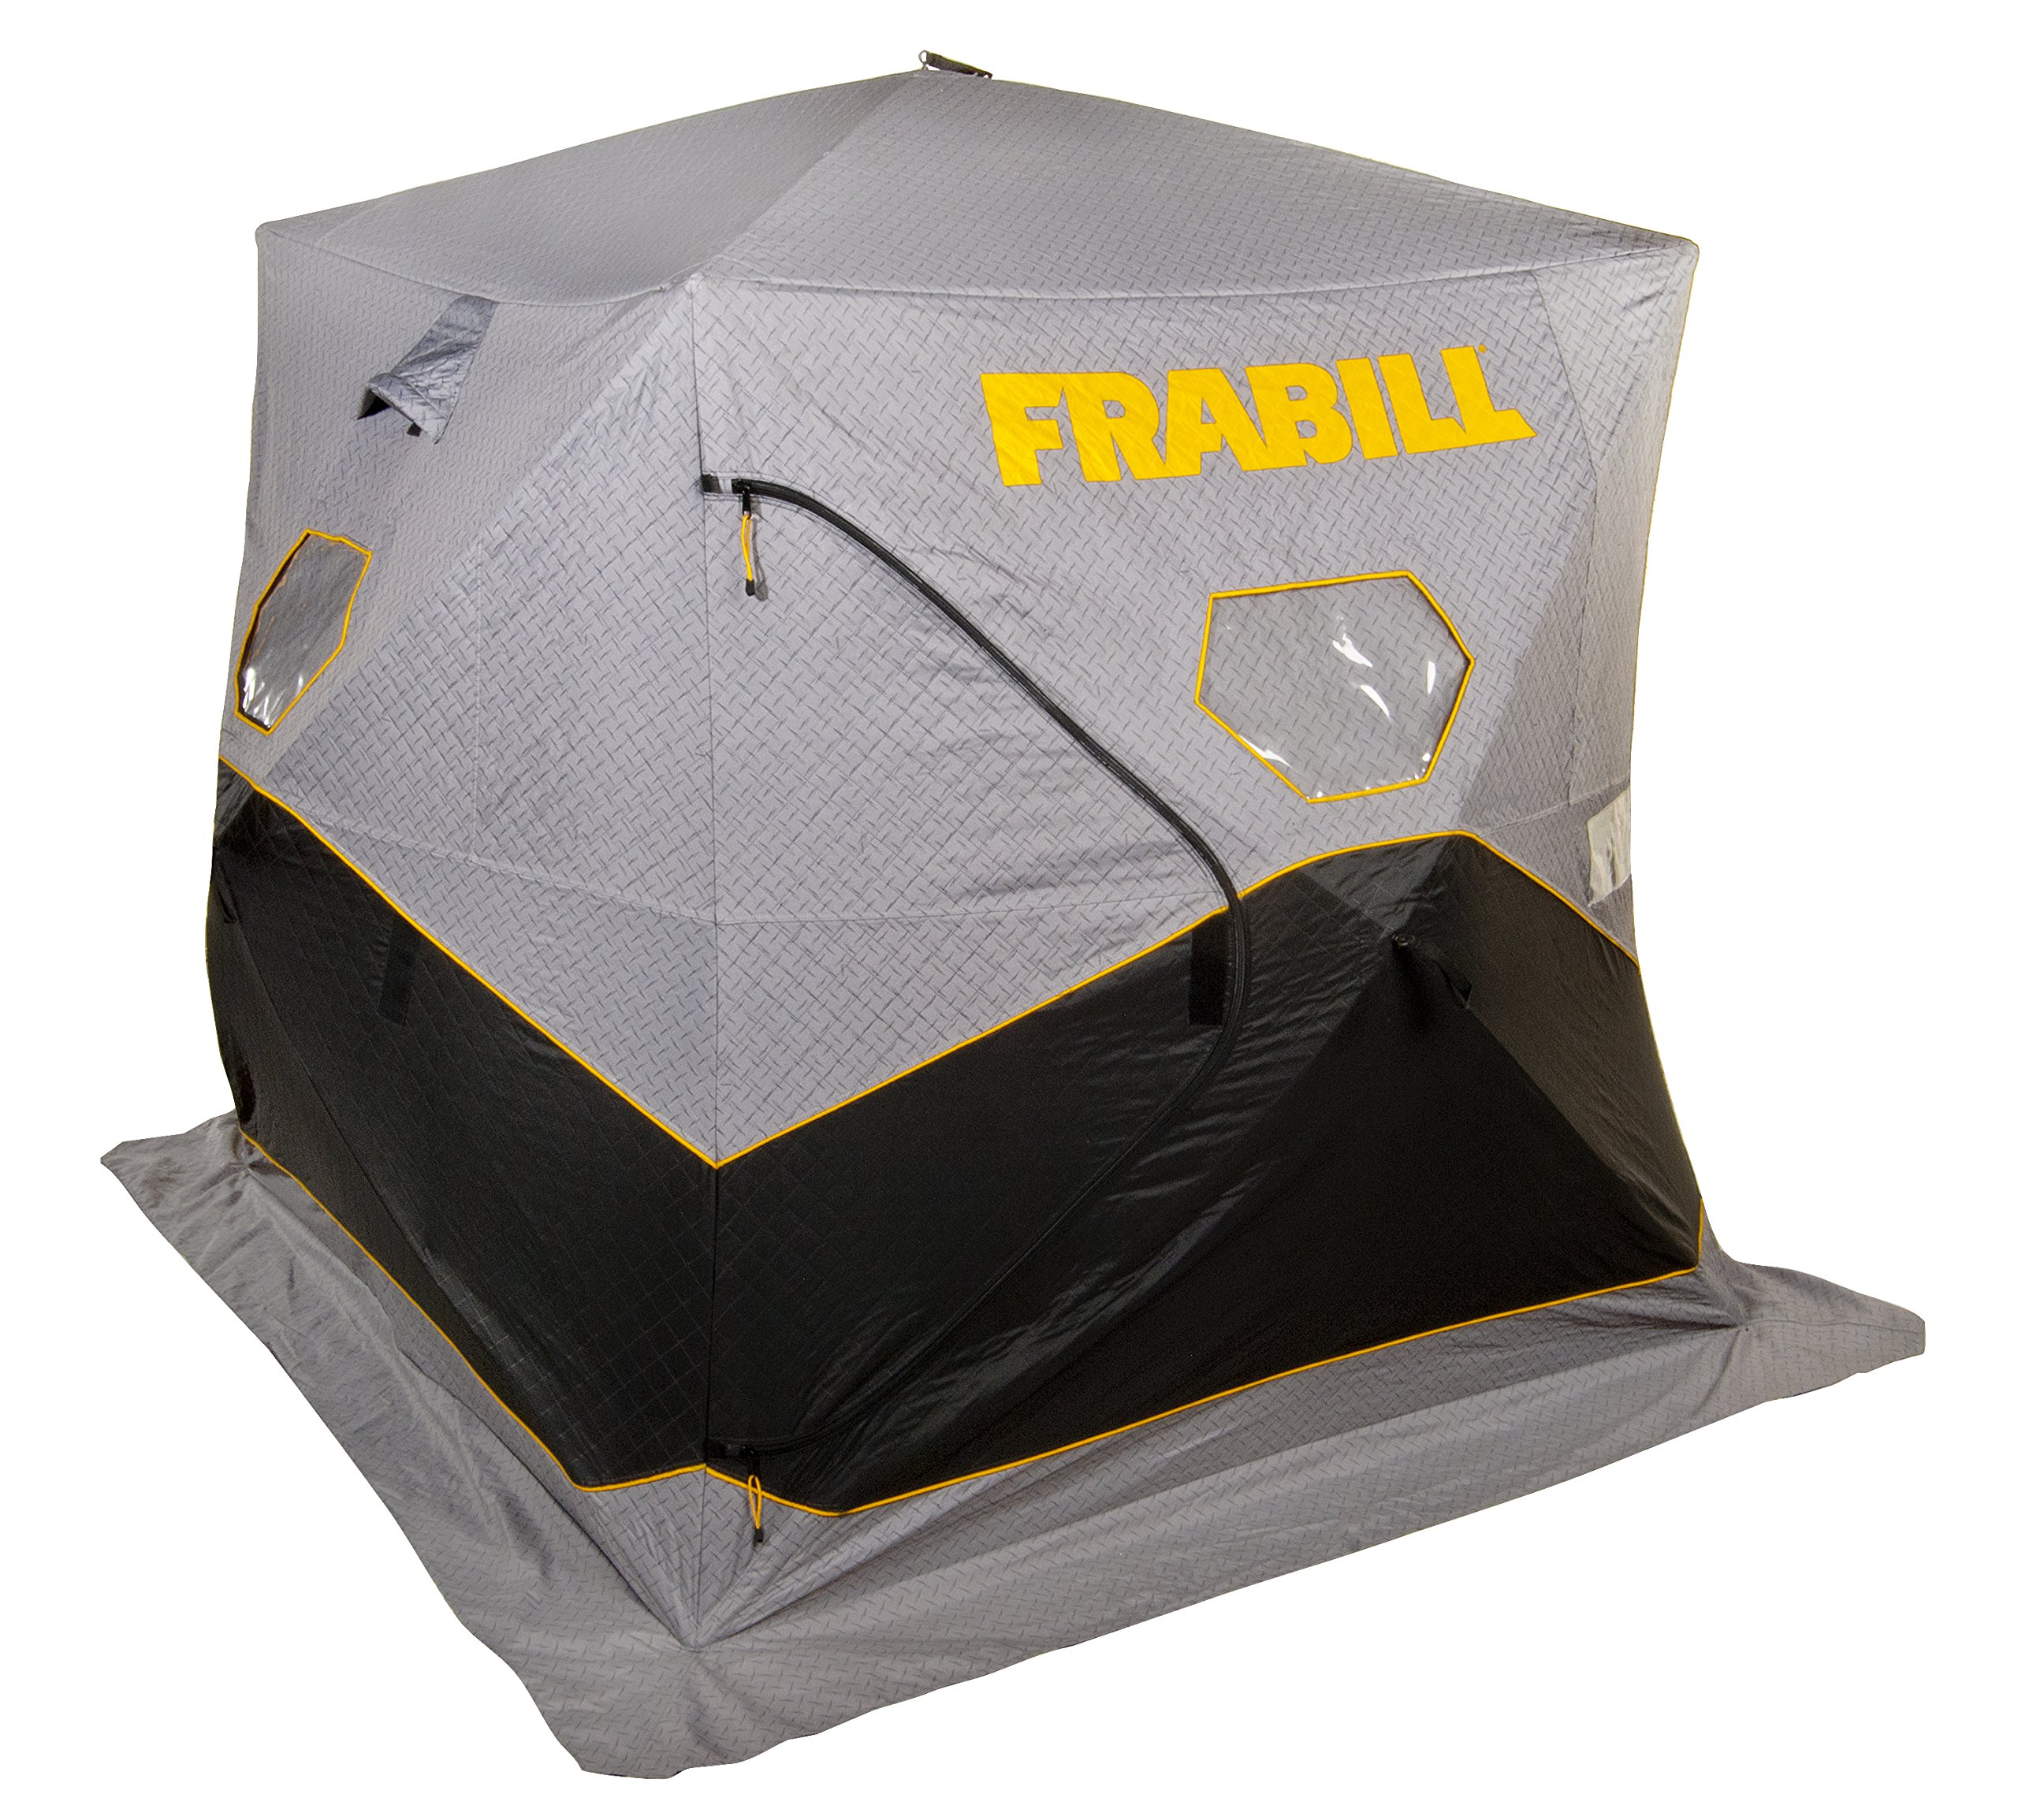 Frabill Bunker 310 Hub Top Insulated 2 - 3 Man Shelter by Frabill